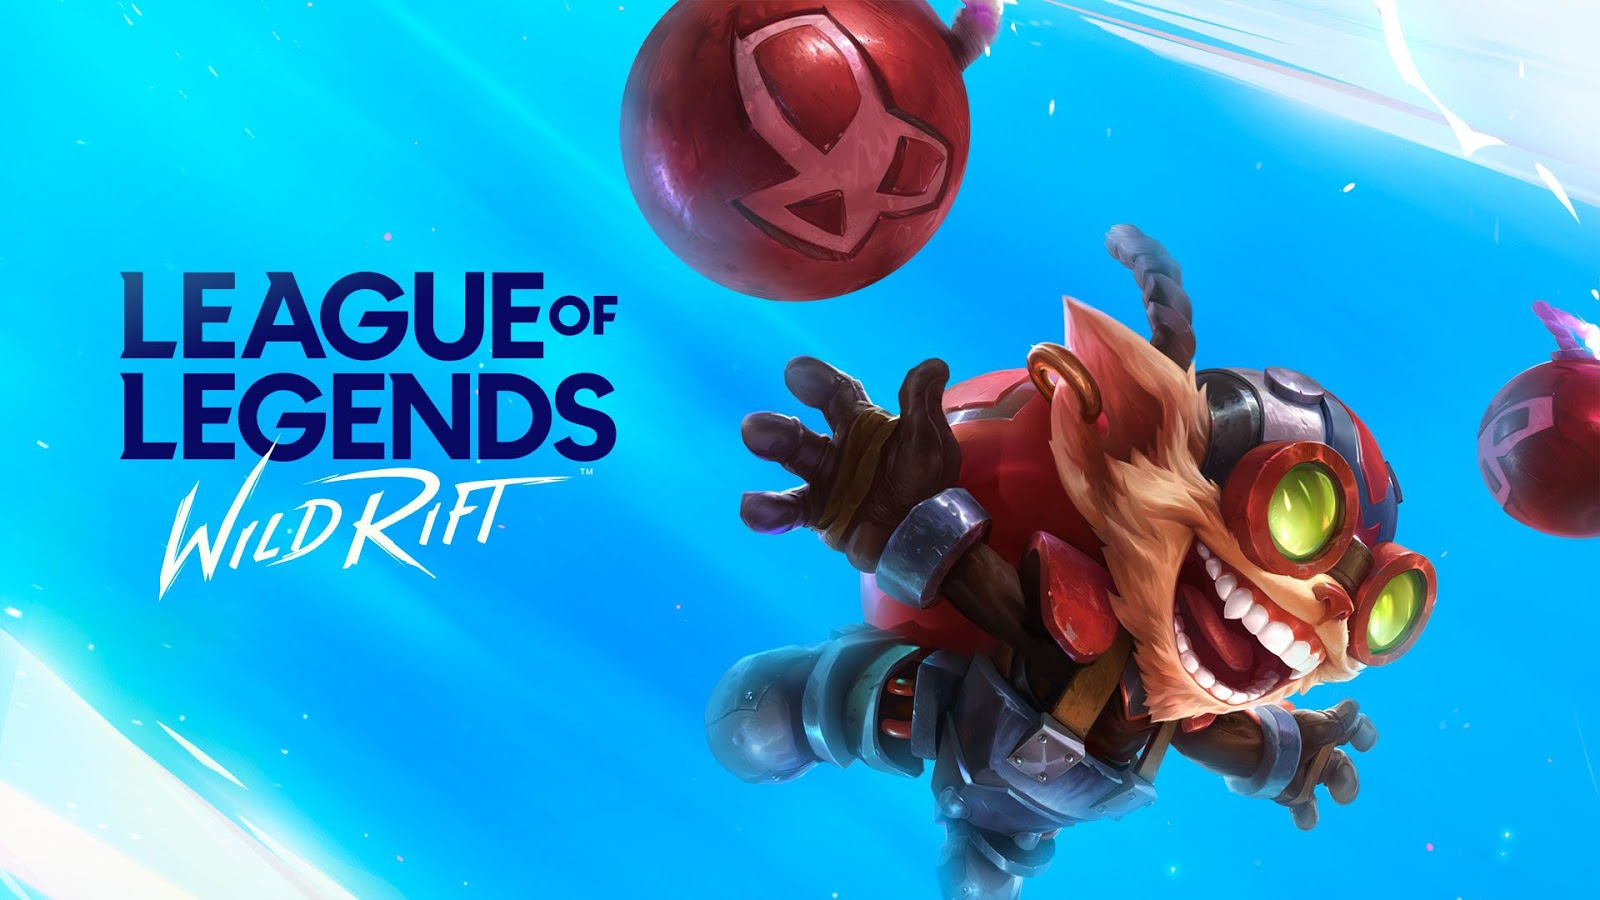 Spesifikasi Minimum Untuk Memainkan League Of Legends : Wild Rift